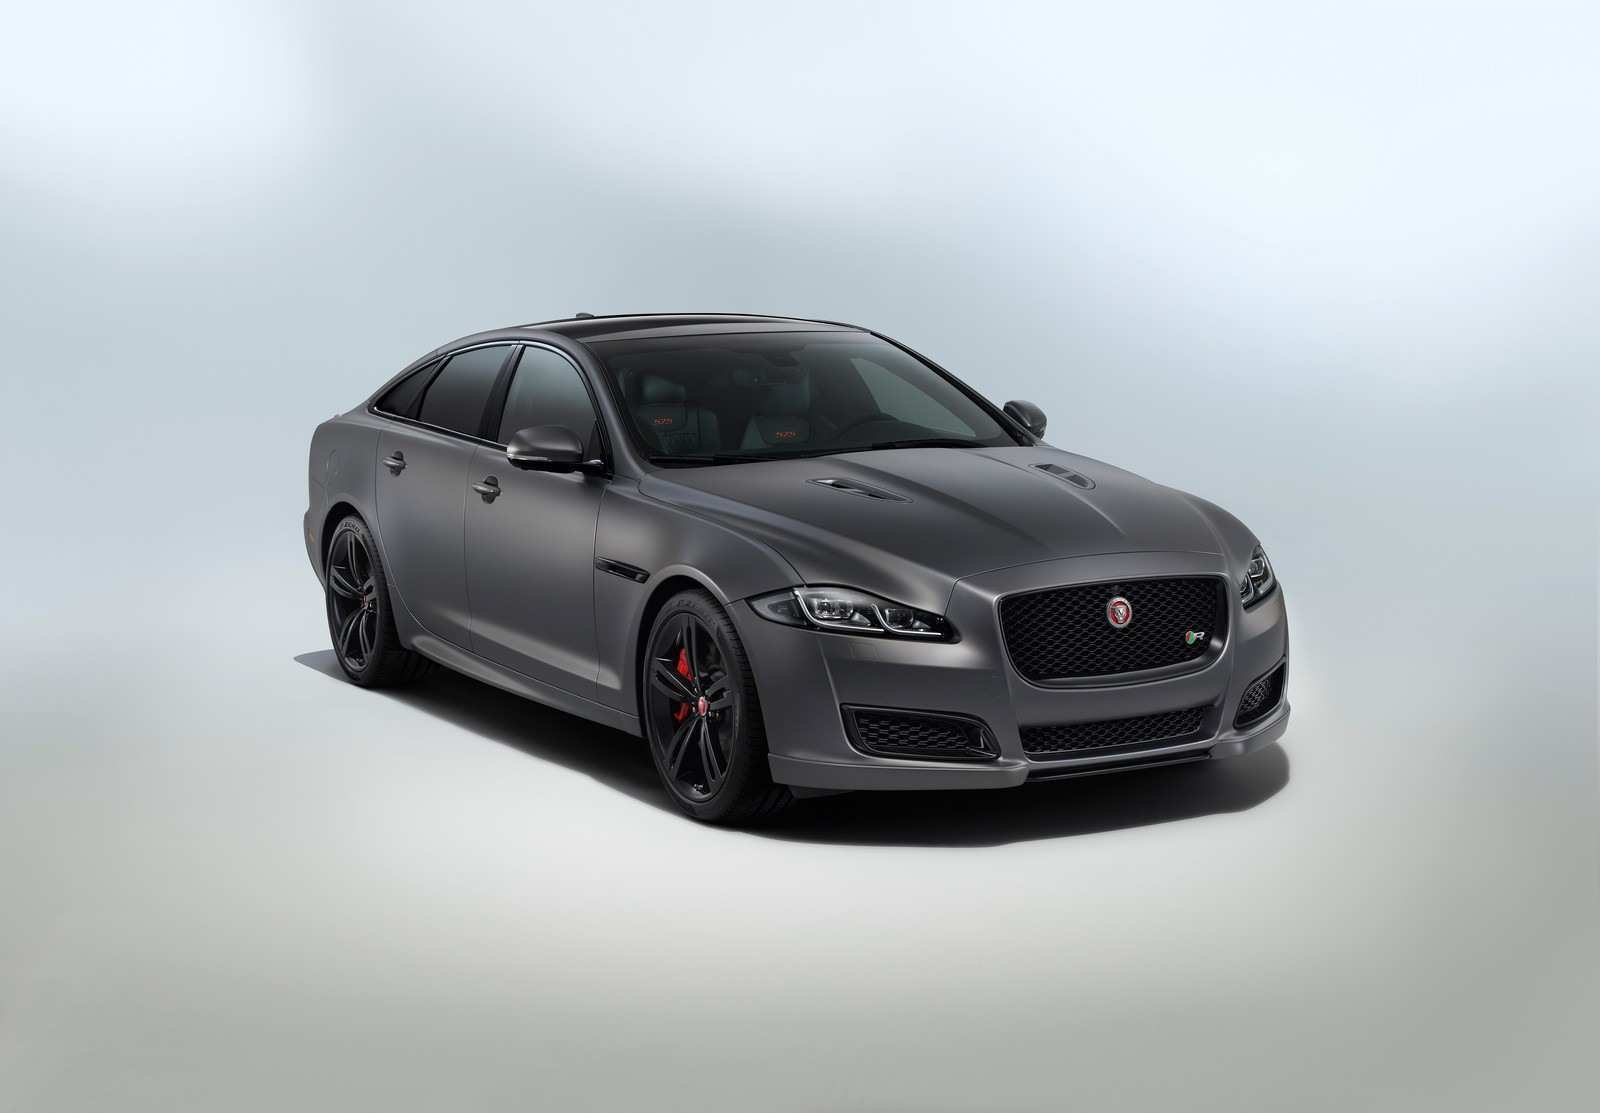 68 All New 2020 All Jaguar Xe Sedan Research New with 2020 All Jaguar Xe Sedan